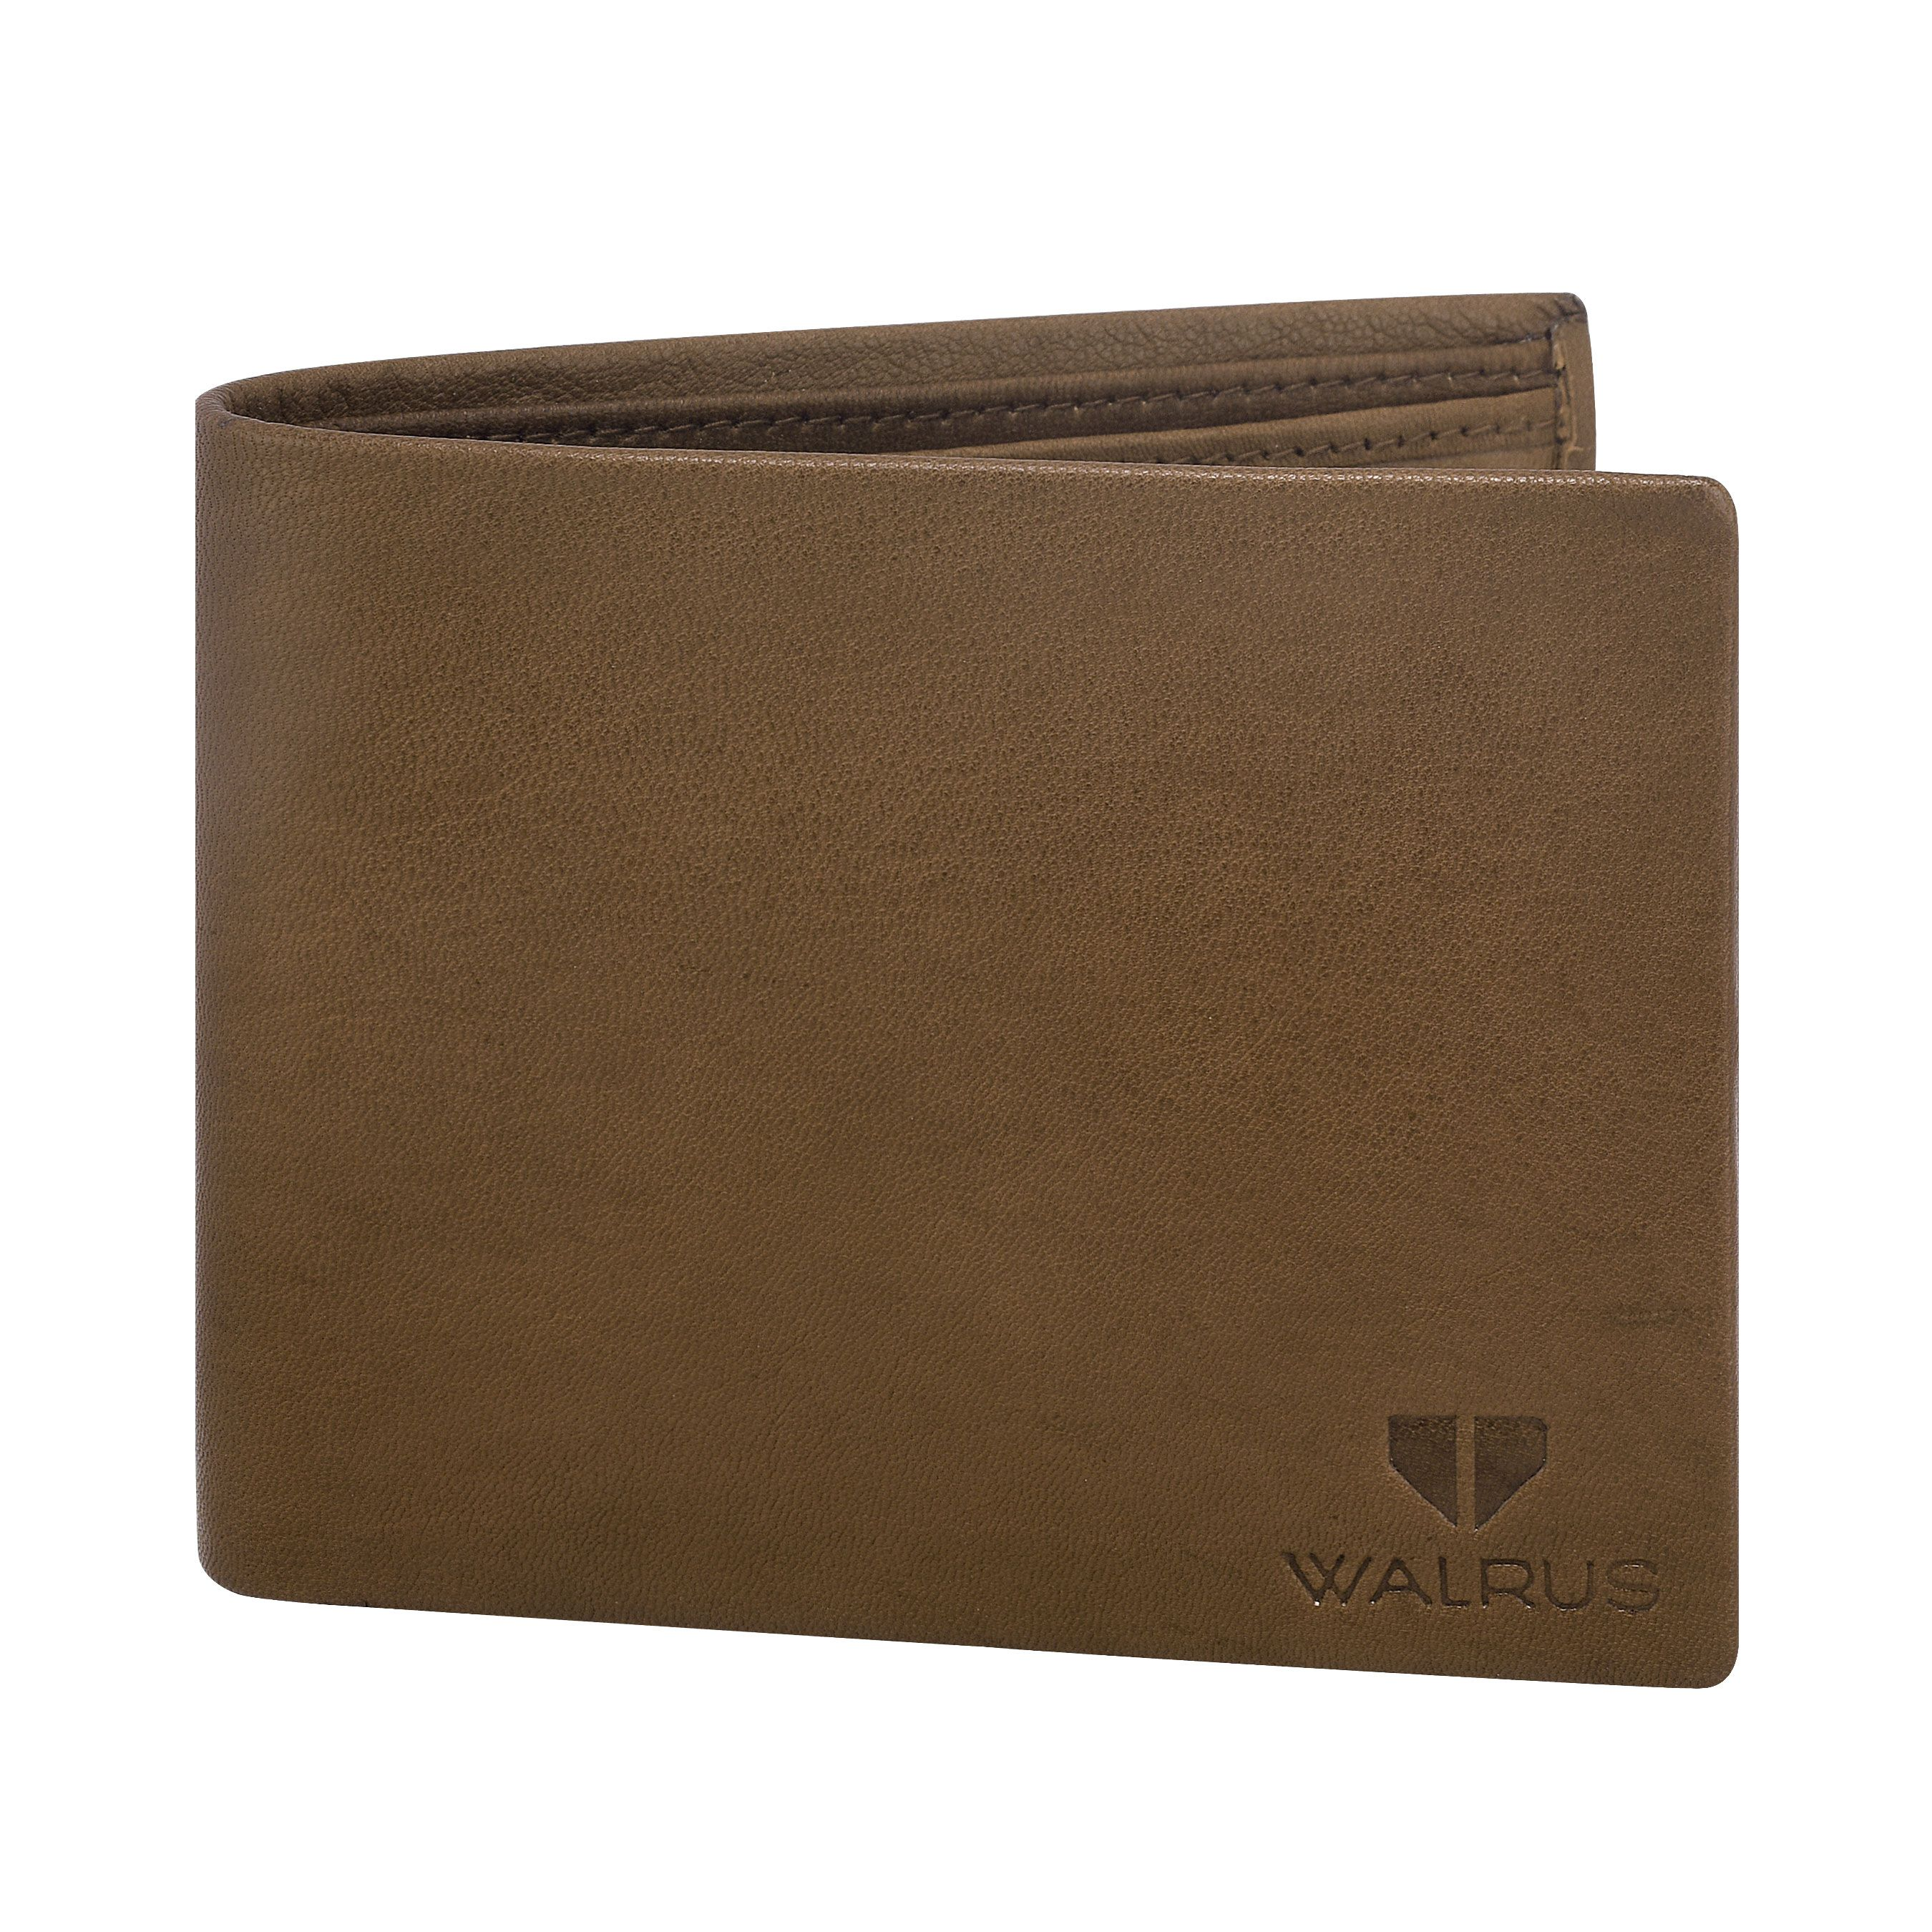 Walrus Imperial Brown Color Men Genuine Leather Wallet (WW-IMP-09)